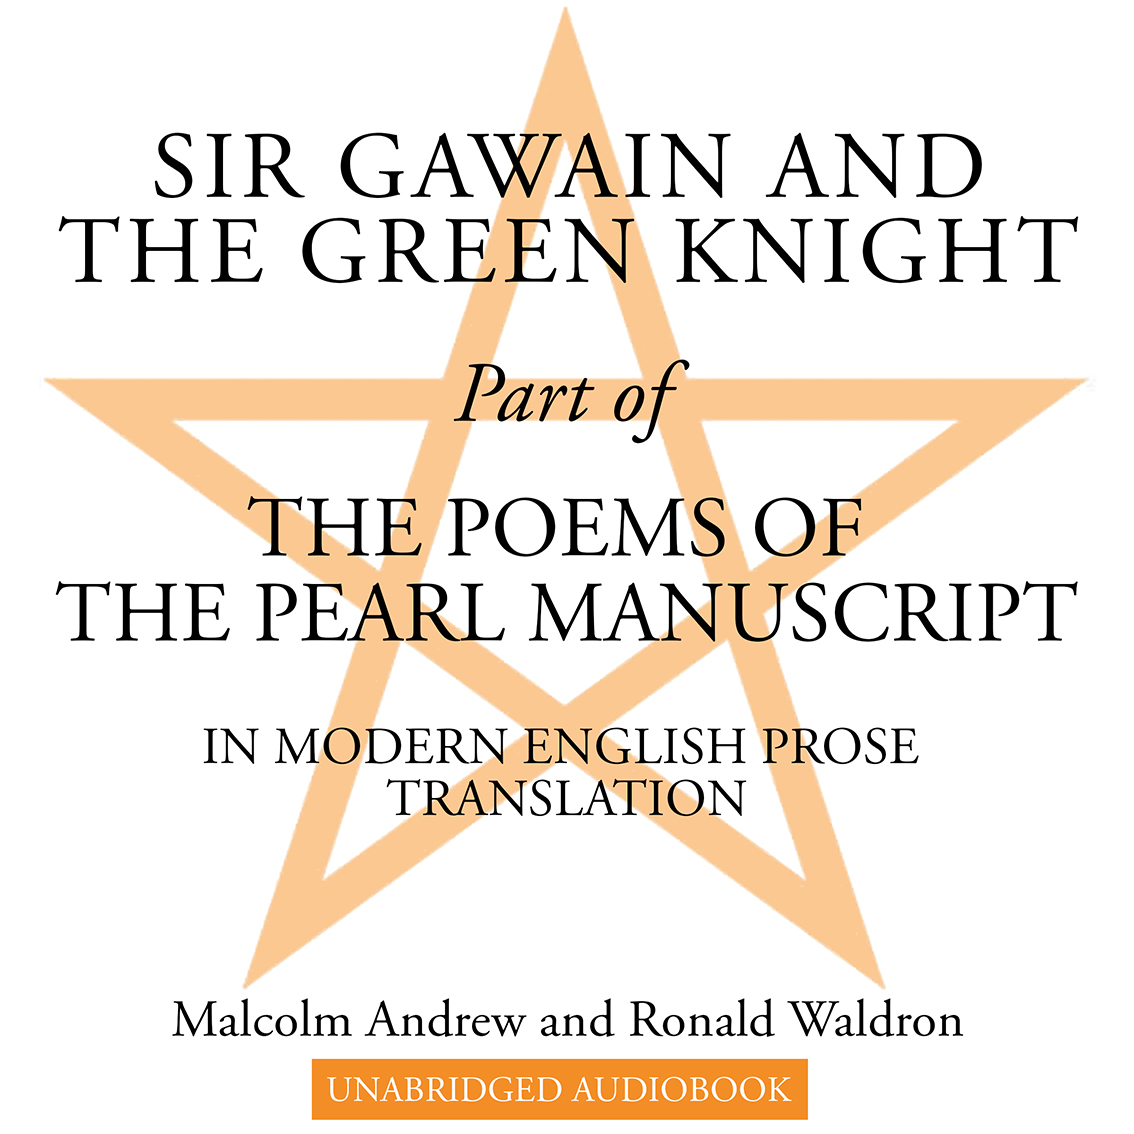 Sir Gawain and the Green Knight, Part of The Poems of the Pearl Manuscript in Modern English Prose Translation. authors: Malcolm Andrew Ronald Waldron. Unabridged audiobook.